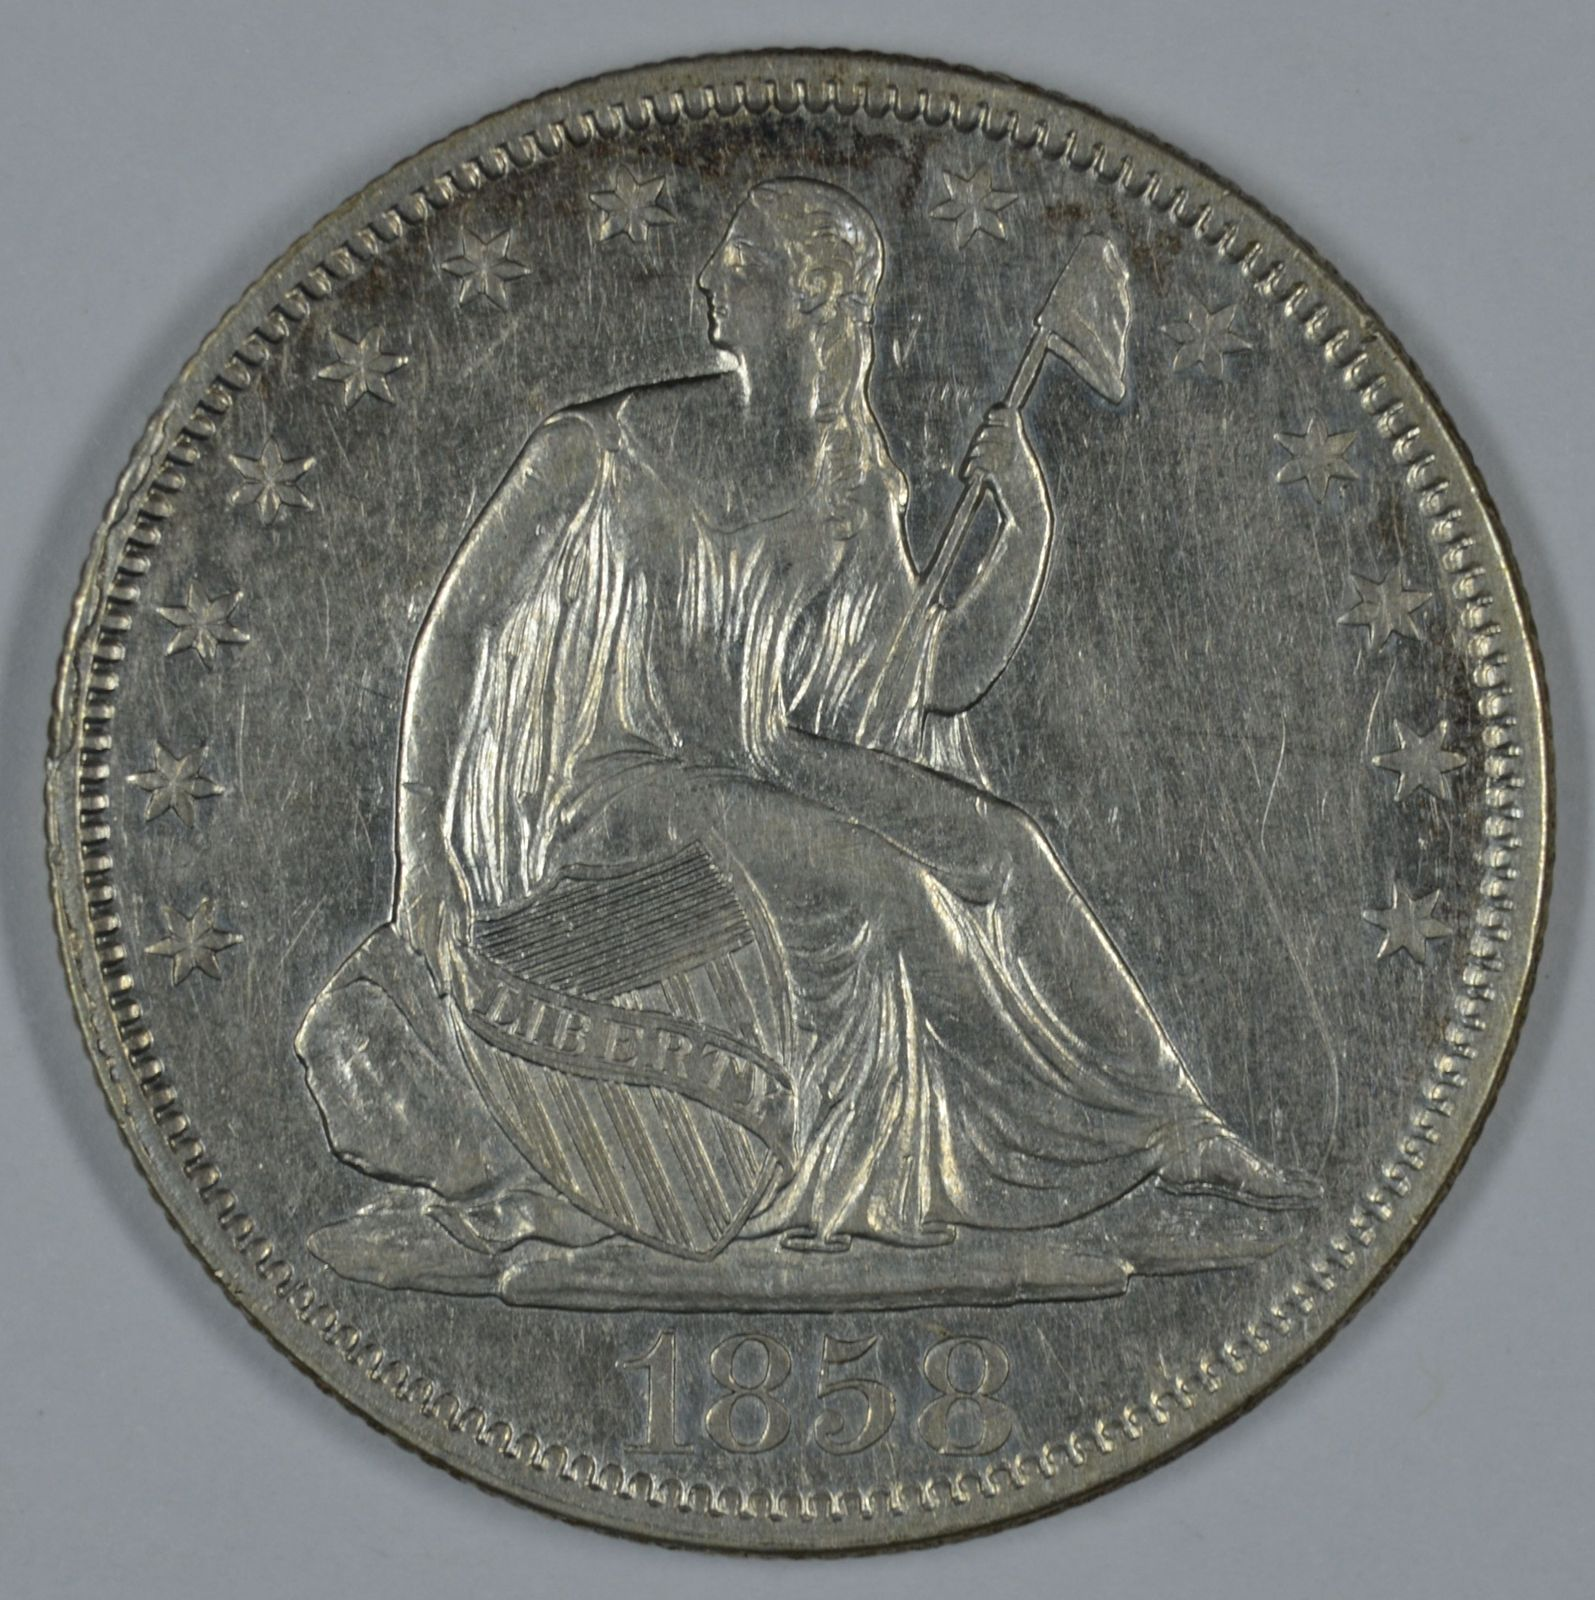 Primary image for 1858 Seated Liberty circulated silver half dollar VF+ details Rim Cud on obverse